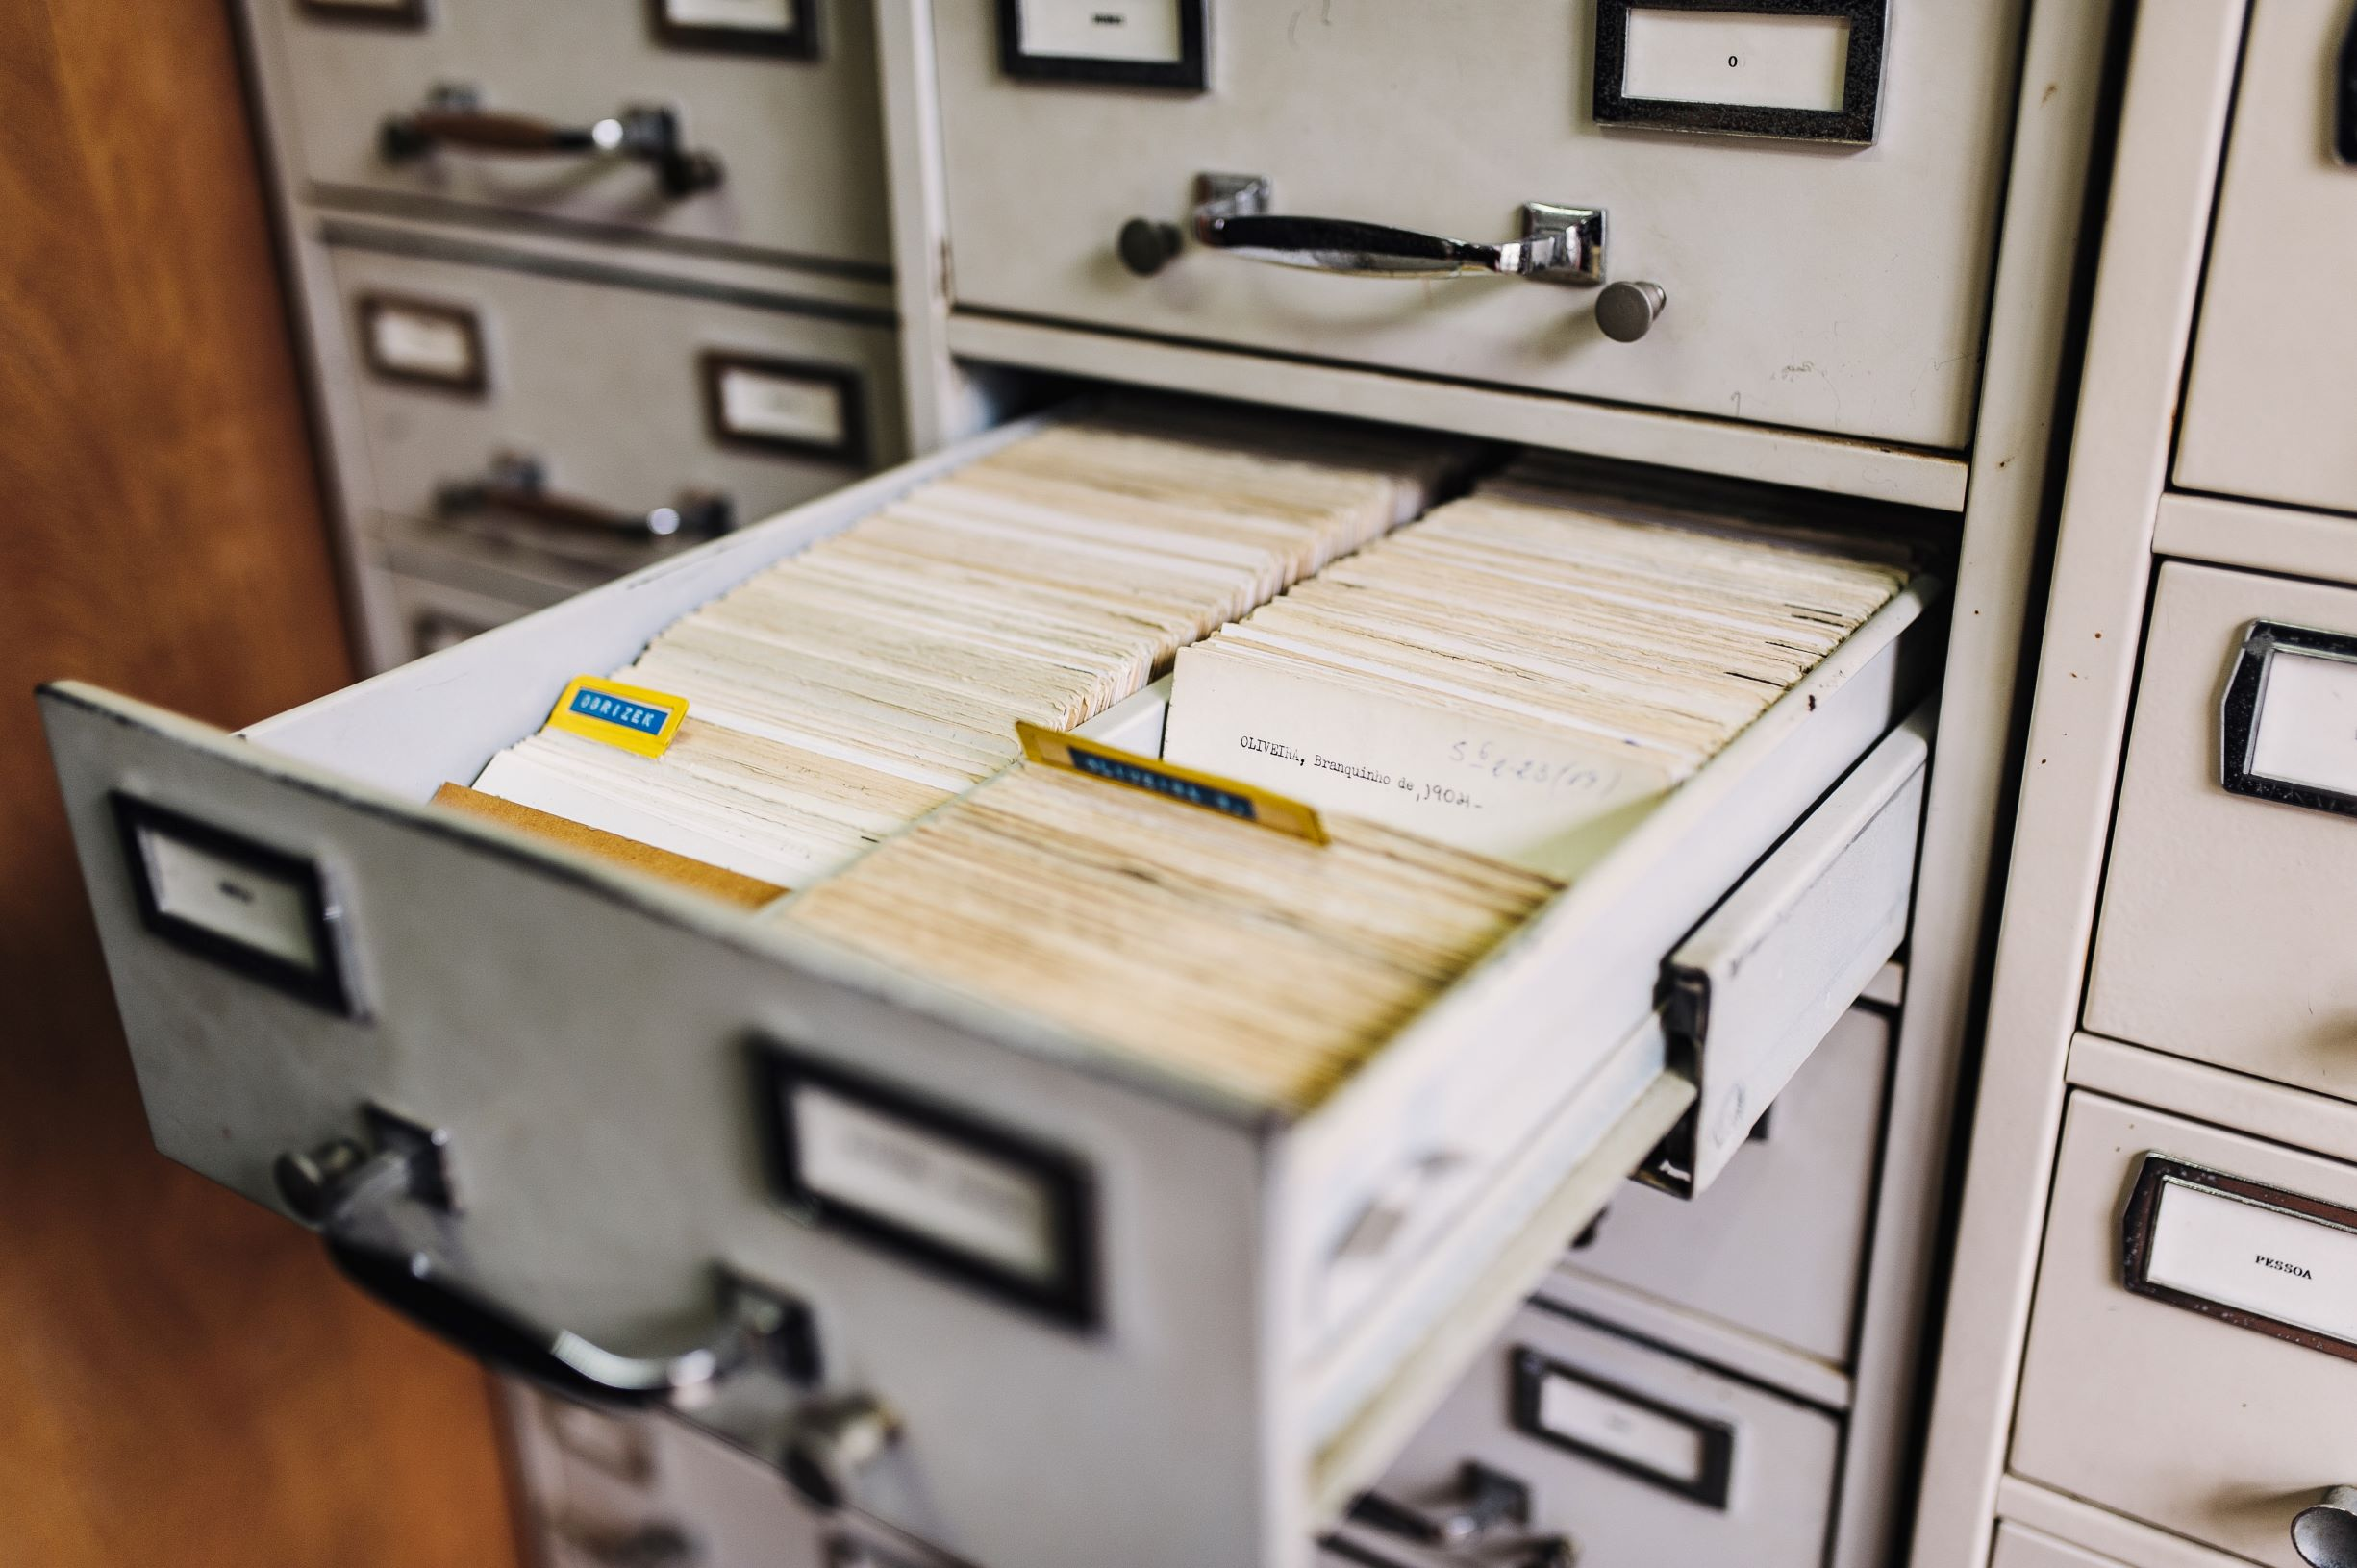 content filing represented by filing cabinet